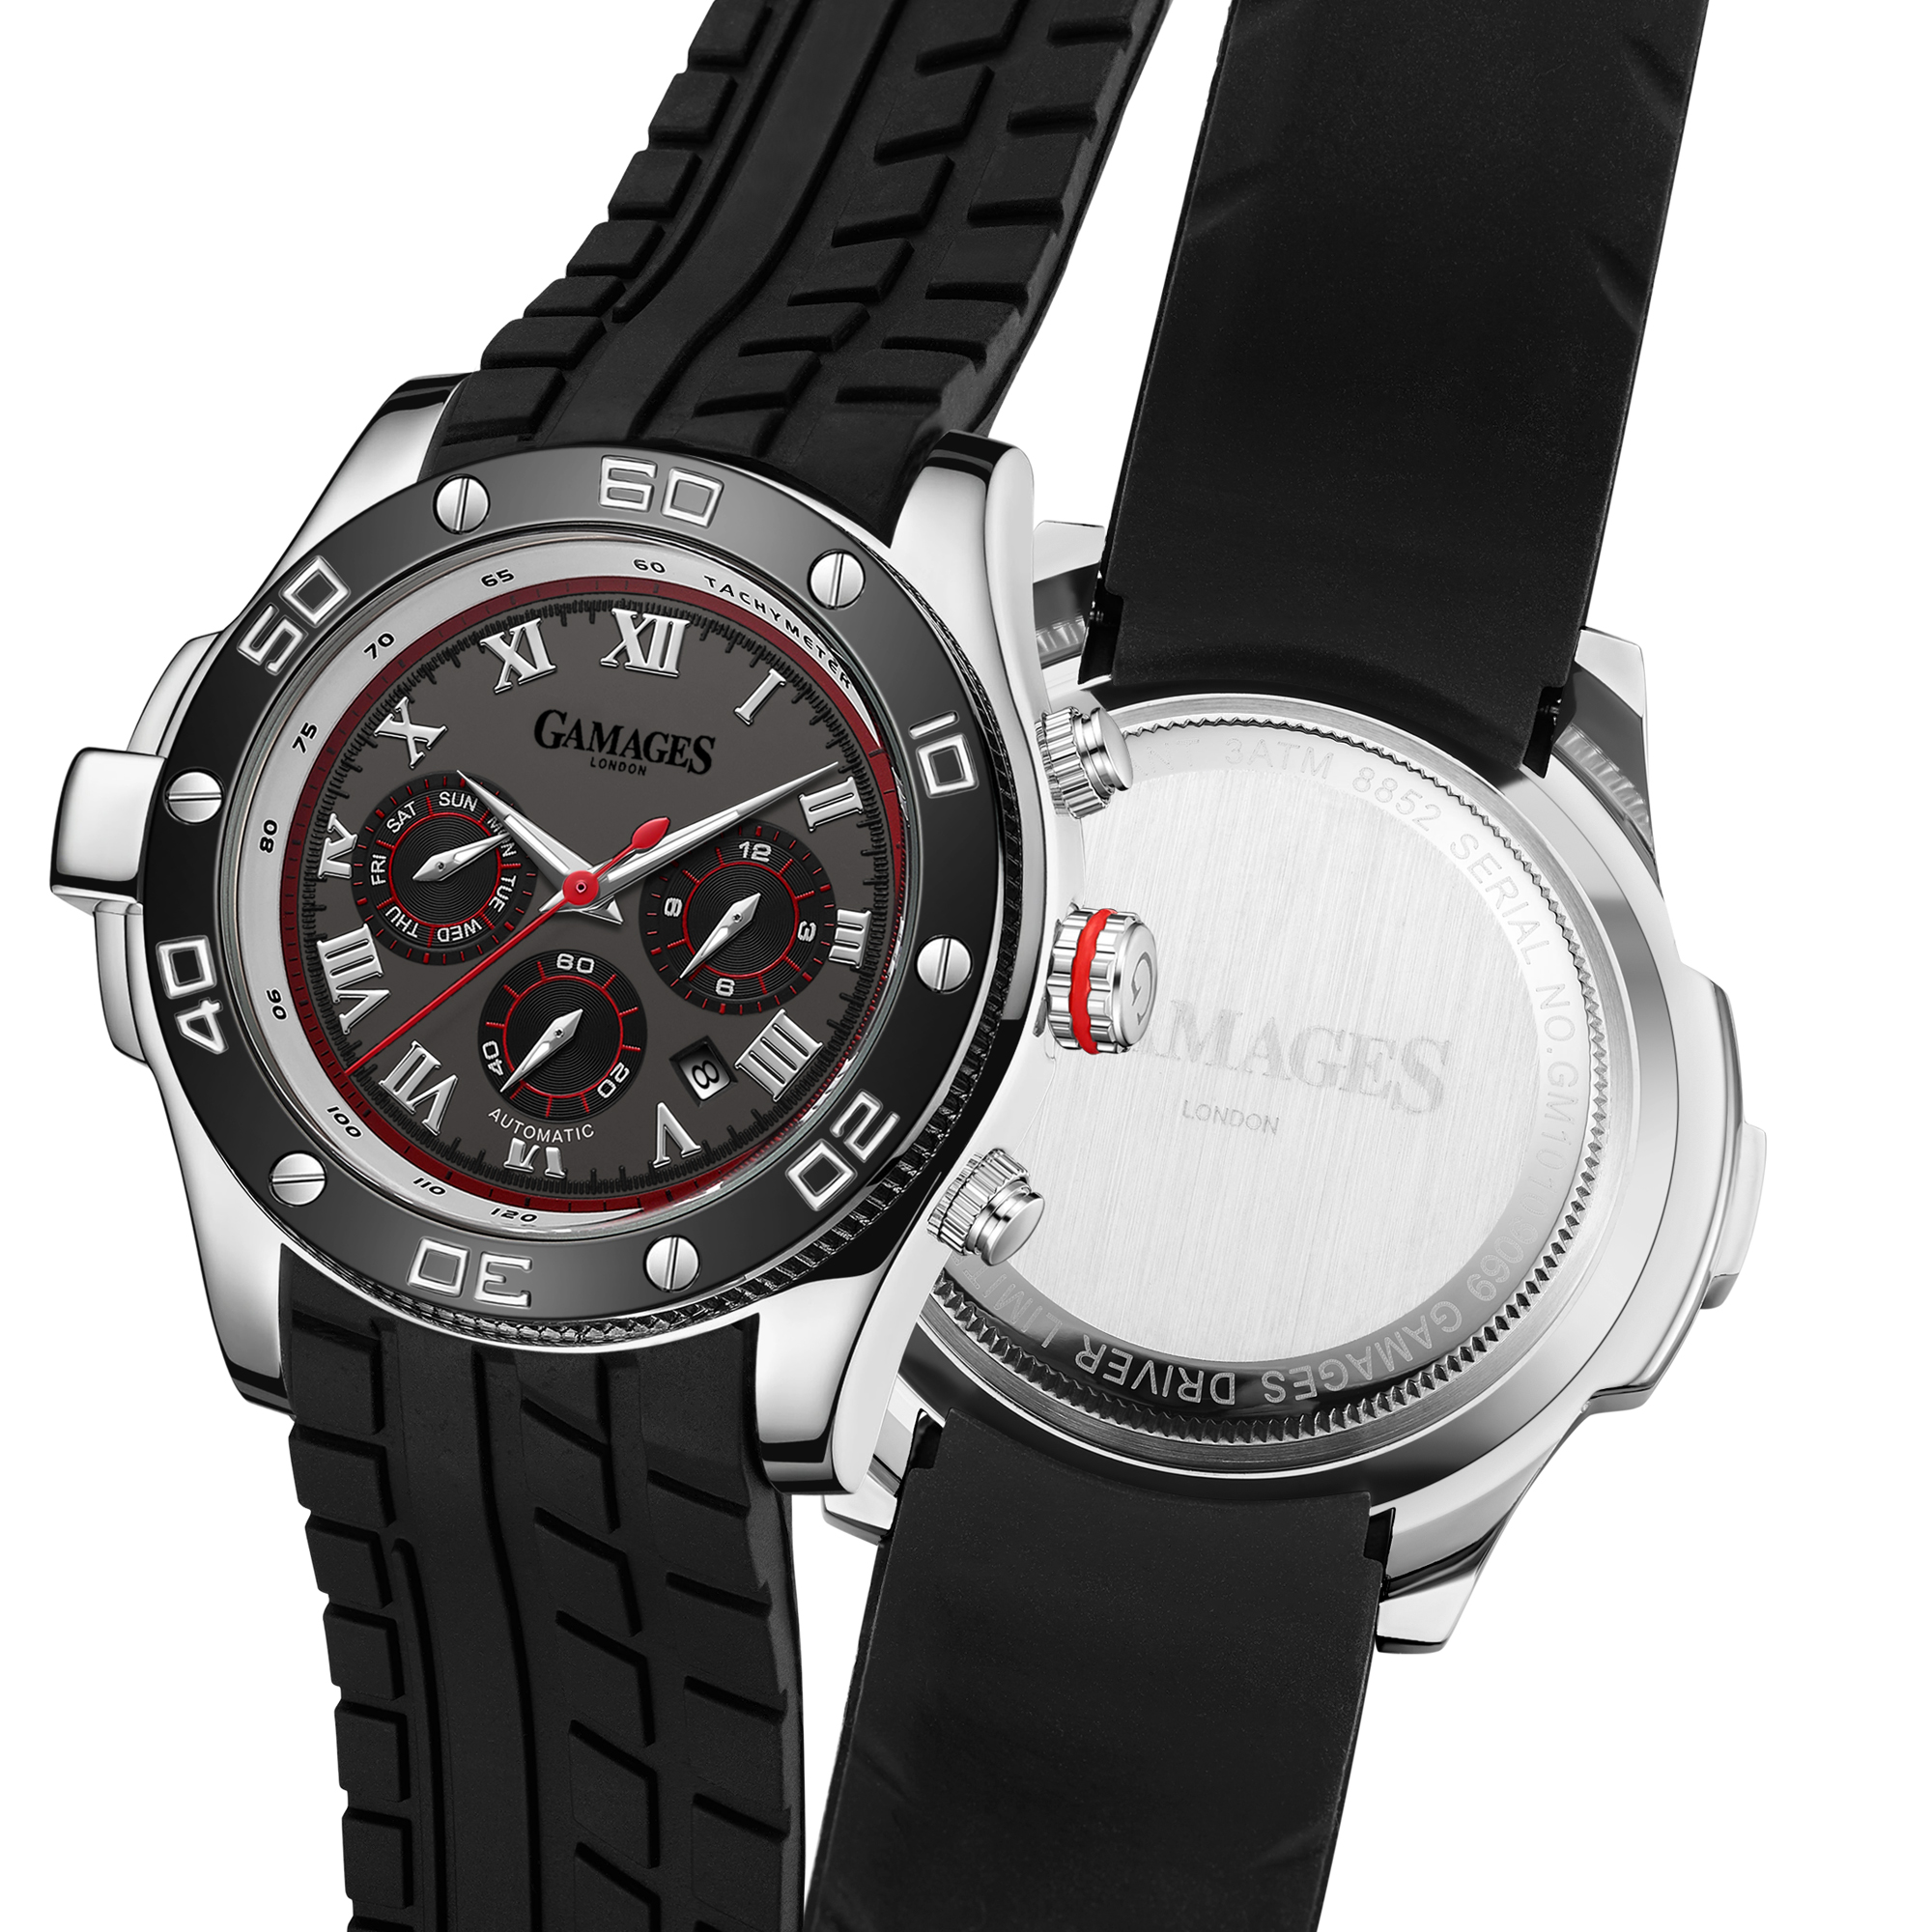 Ltd Edition Hand Assembled Gamages Driver Automatic Silver Grey – 5 Year Warranty & Free Delivery - Image 5 of 5